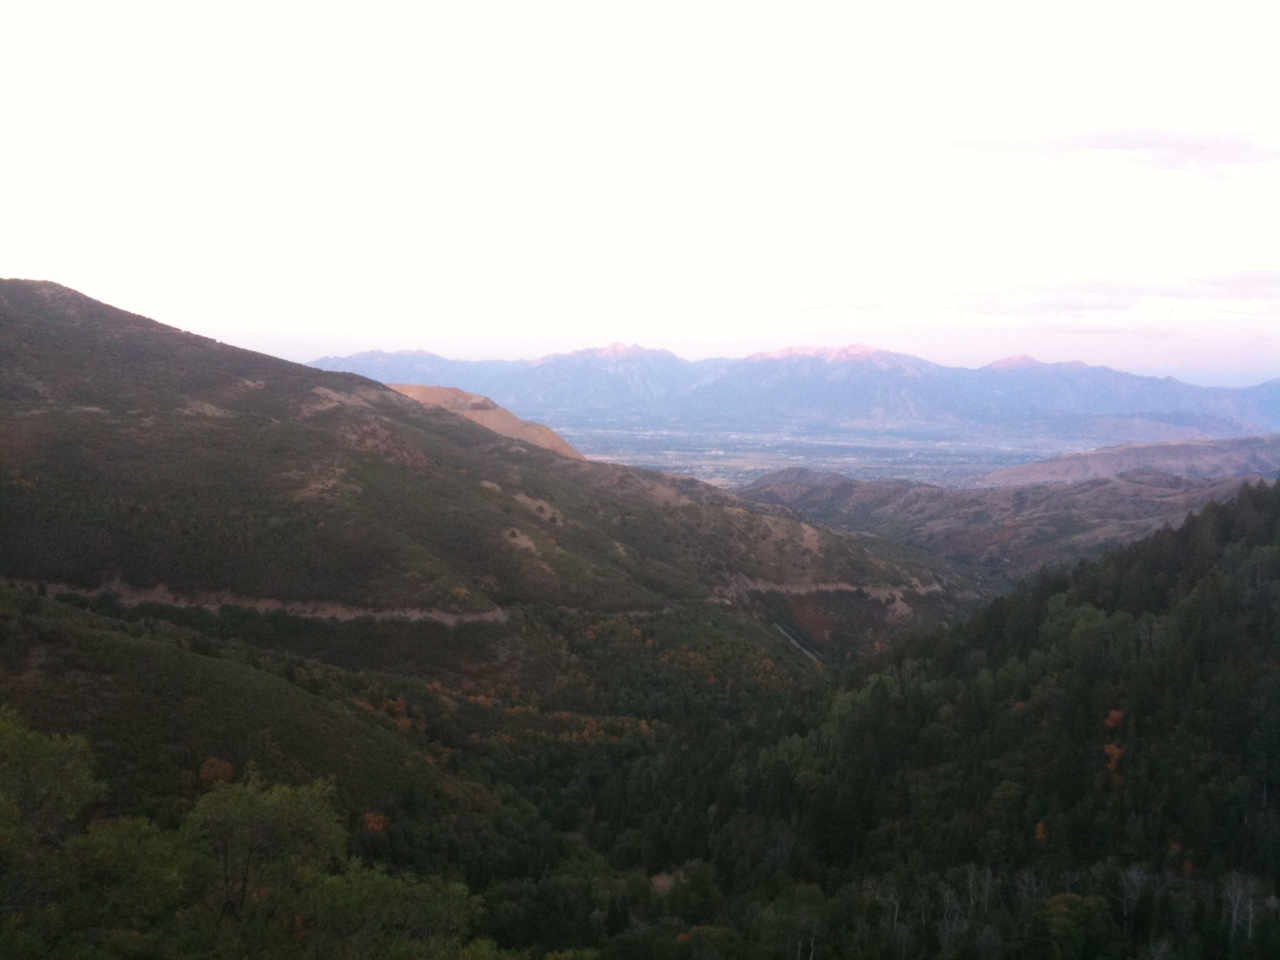 Oquirrh Mountains bicycle ride